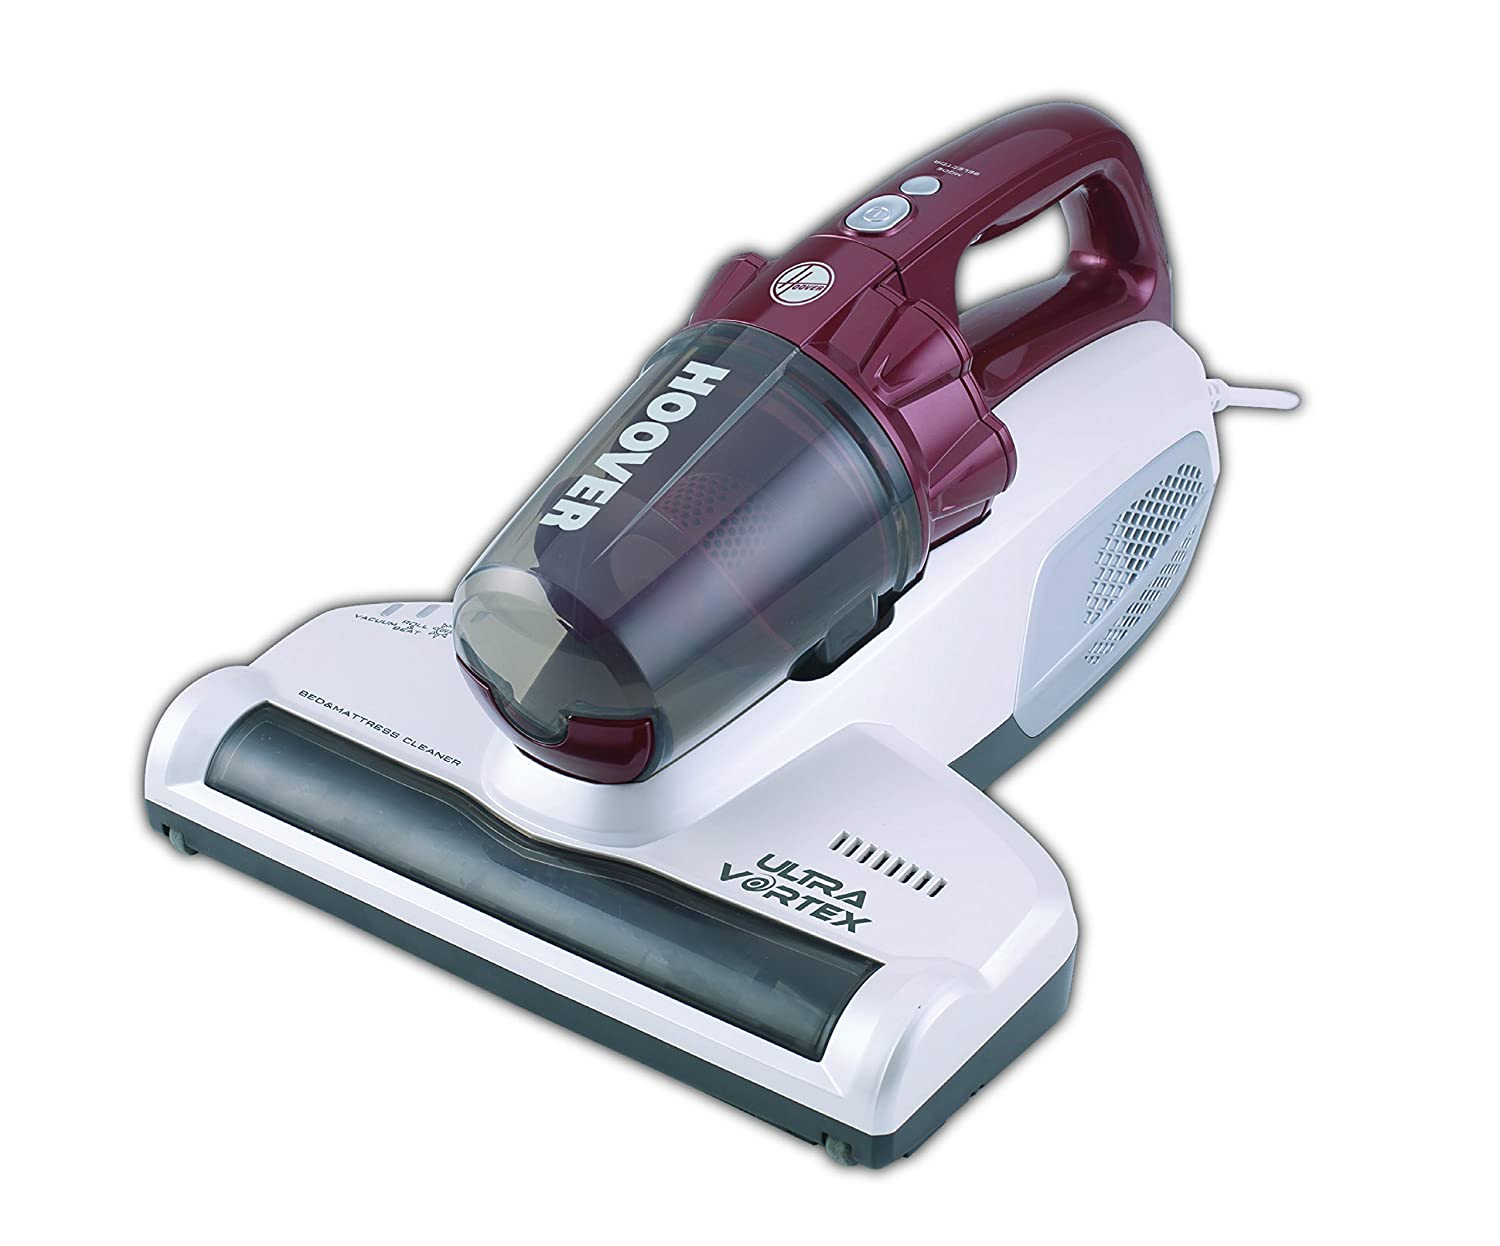 Hoover MBC-500UV UltraMATT Corded Handheld Mattress Vacuum Cleaner, 20 W, Red/White Hoover Ltd 39300209